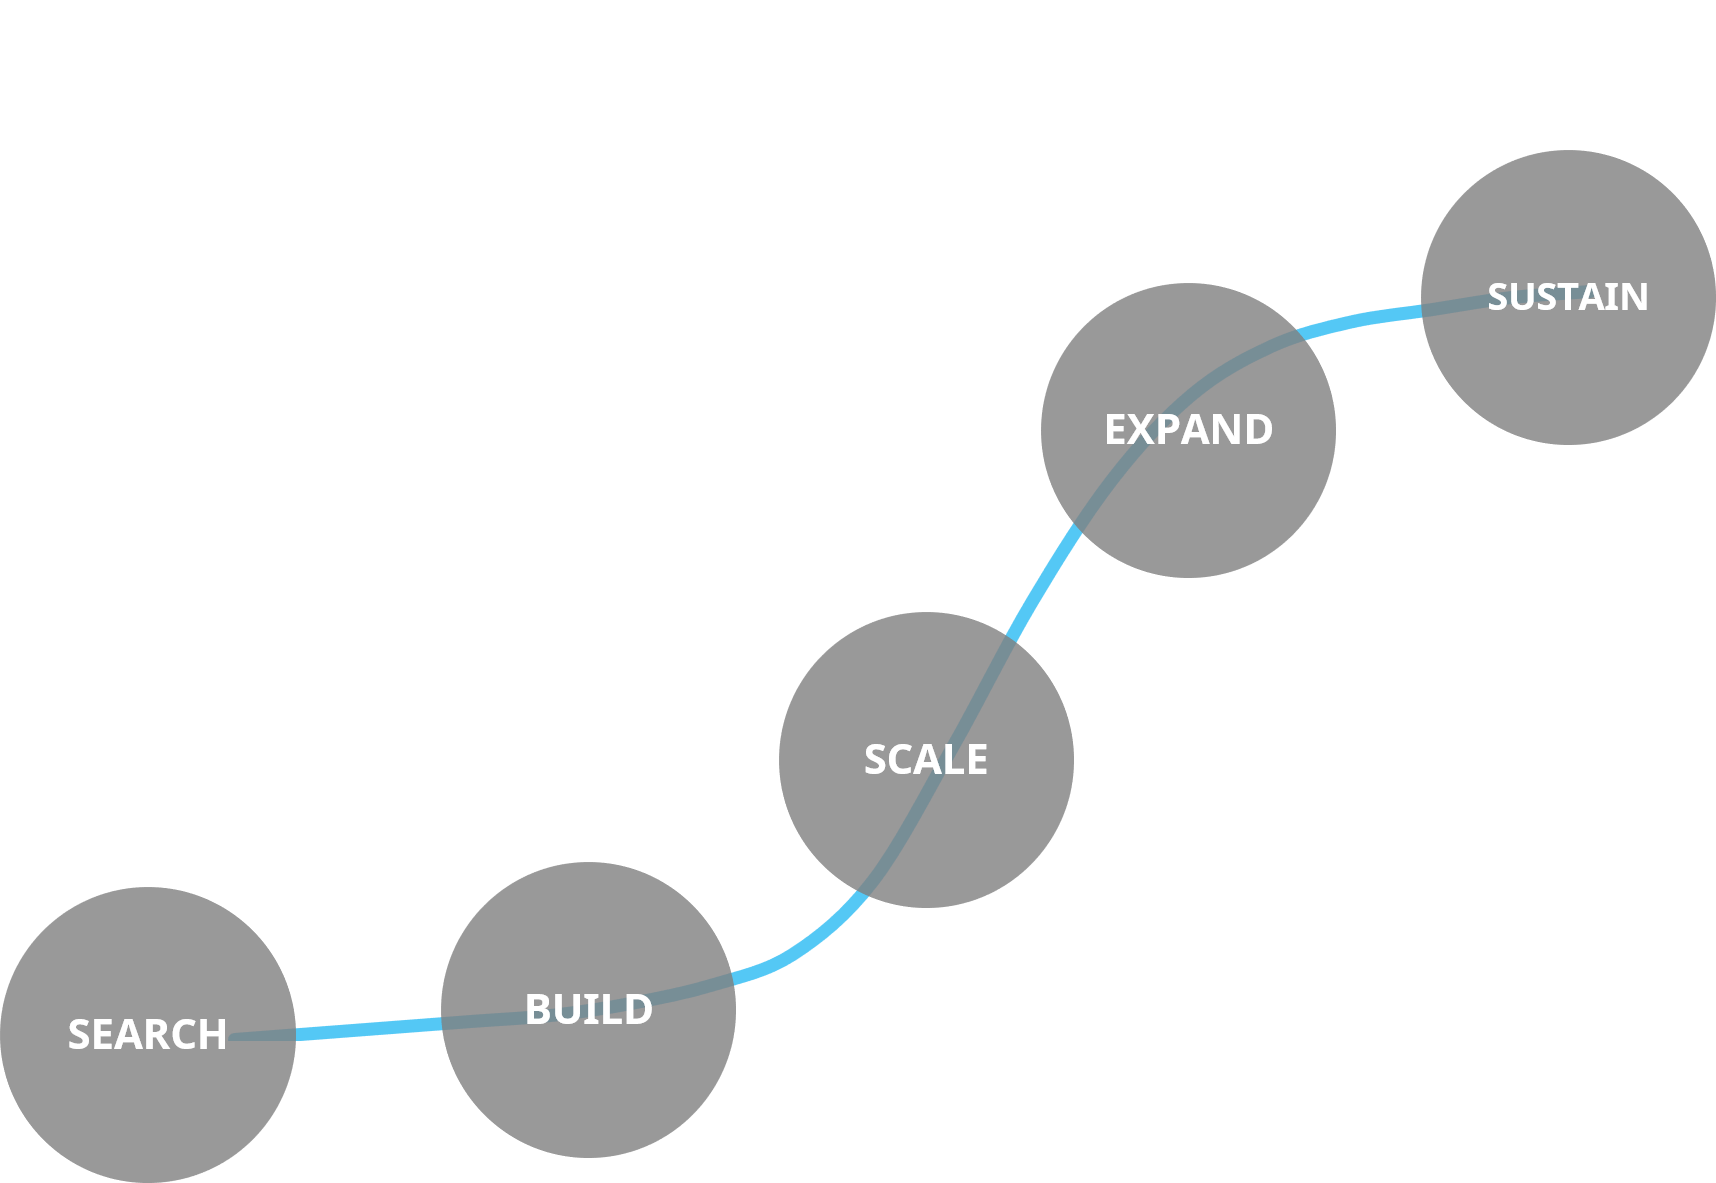 search-build-scale-expand-sustain